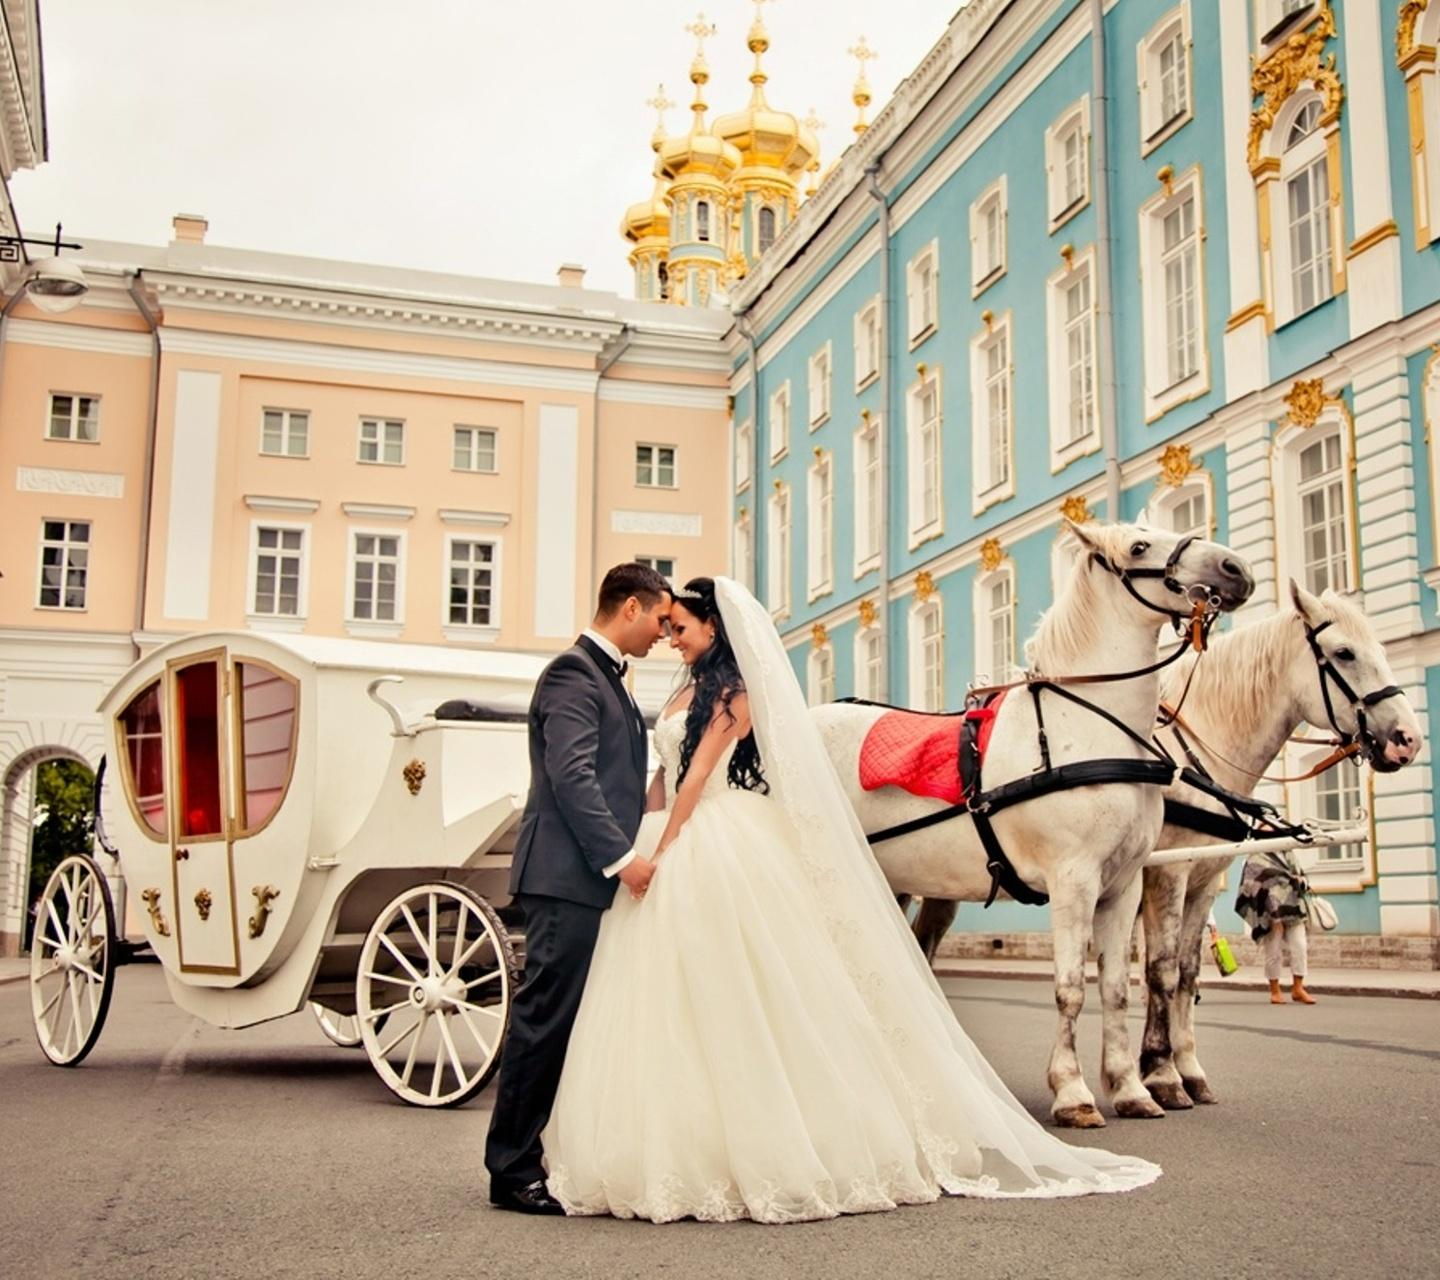 download wedding couple hd wallpaper for laptop - abstract love